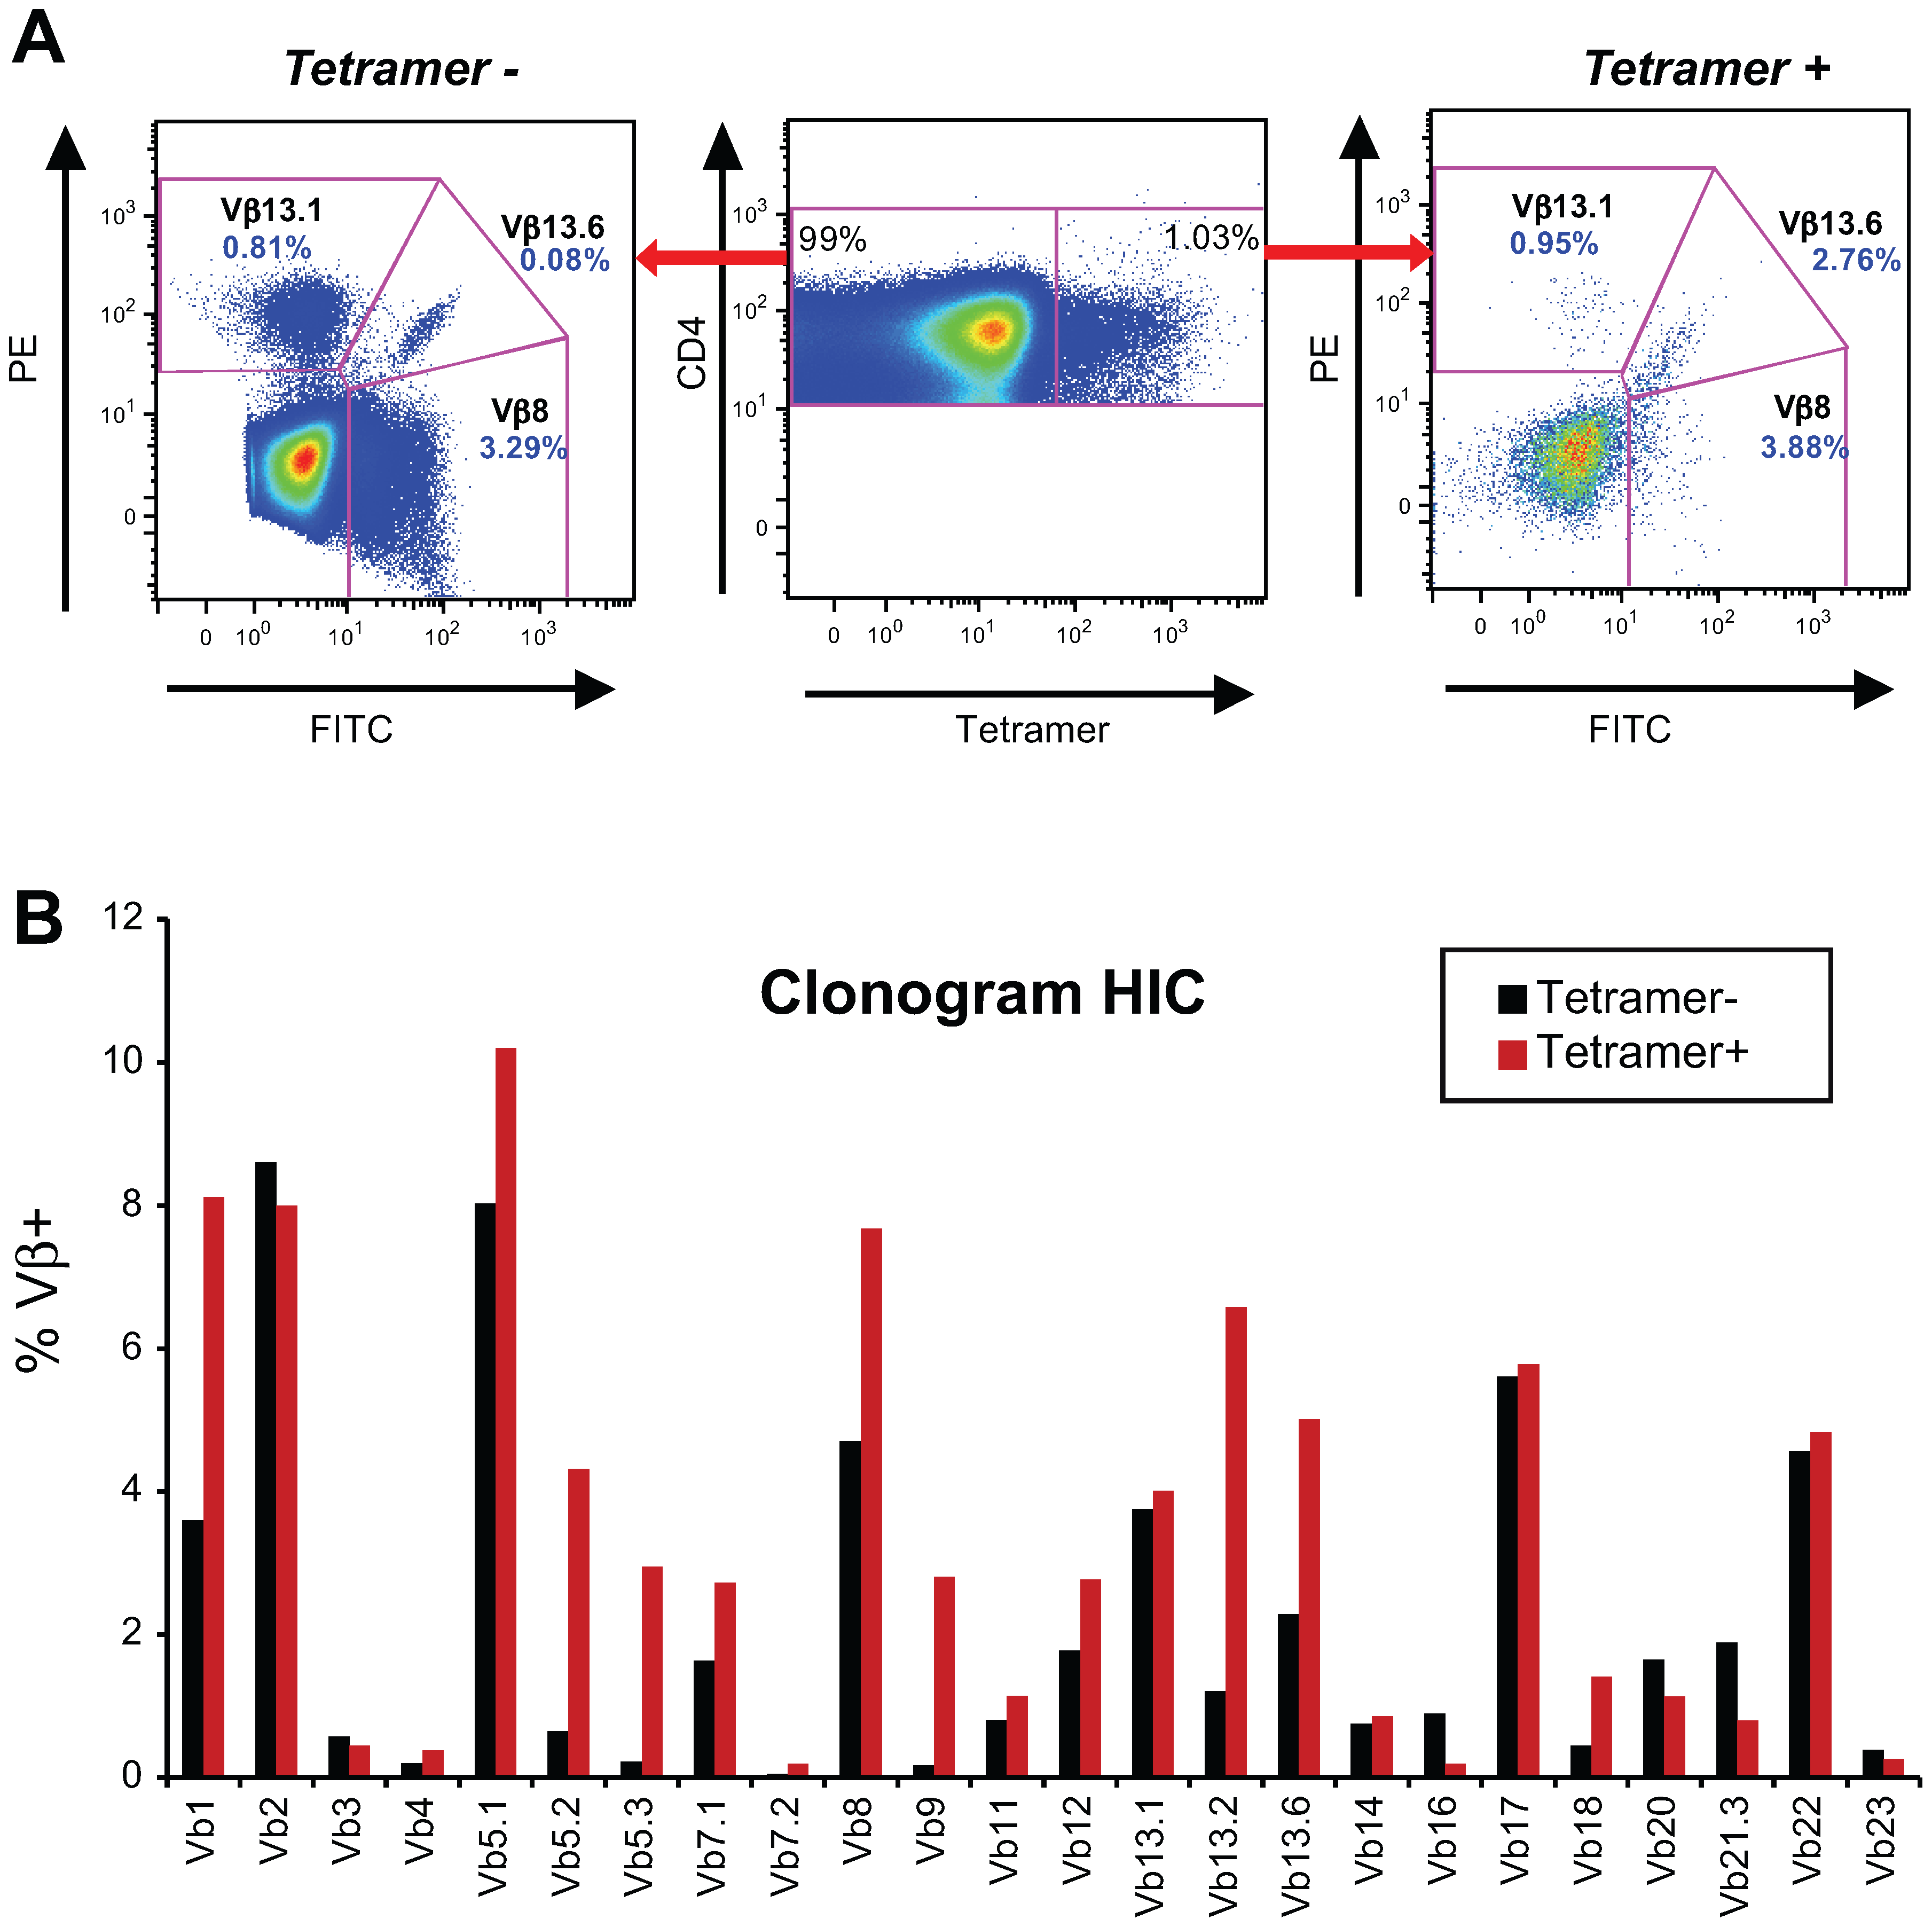 Gag293-specific CD4+ T cells have a diverse Vβ repertoire.